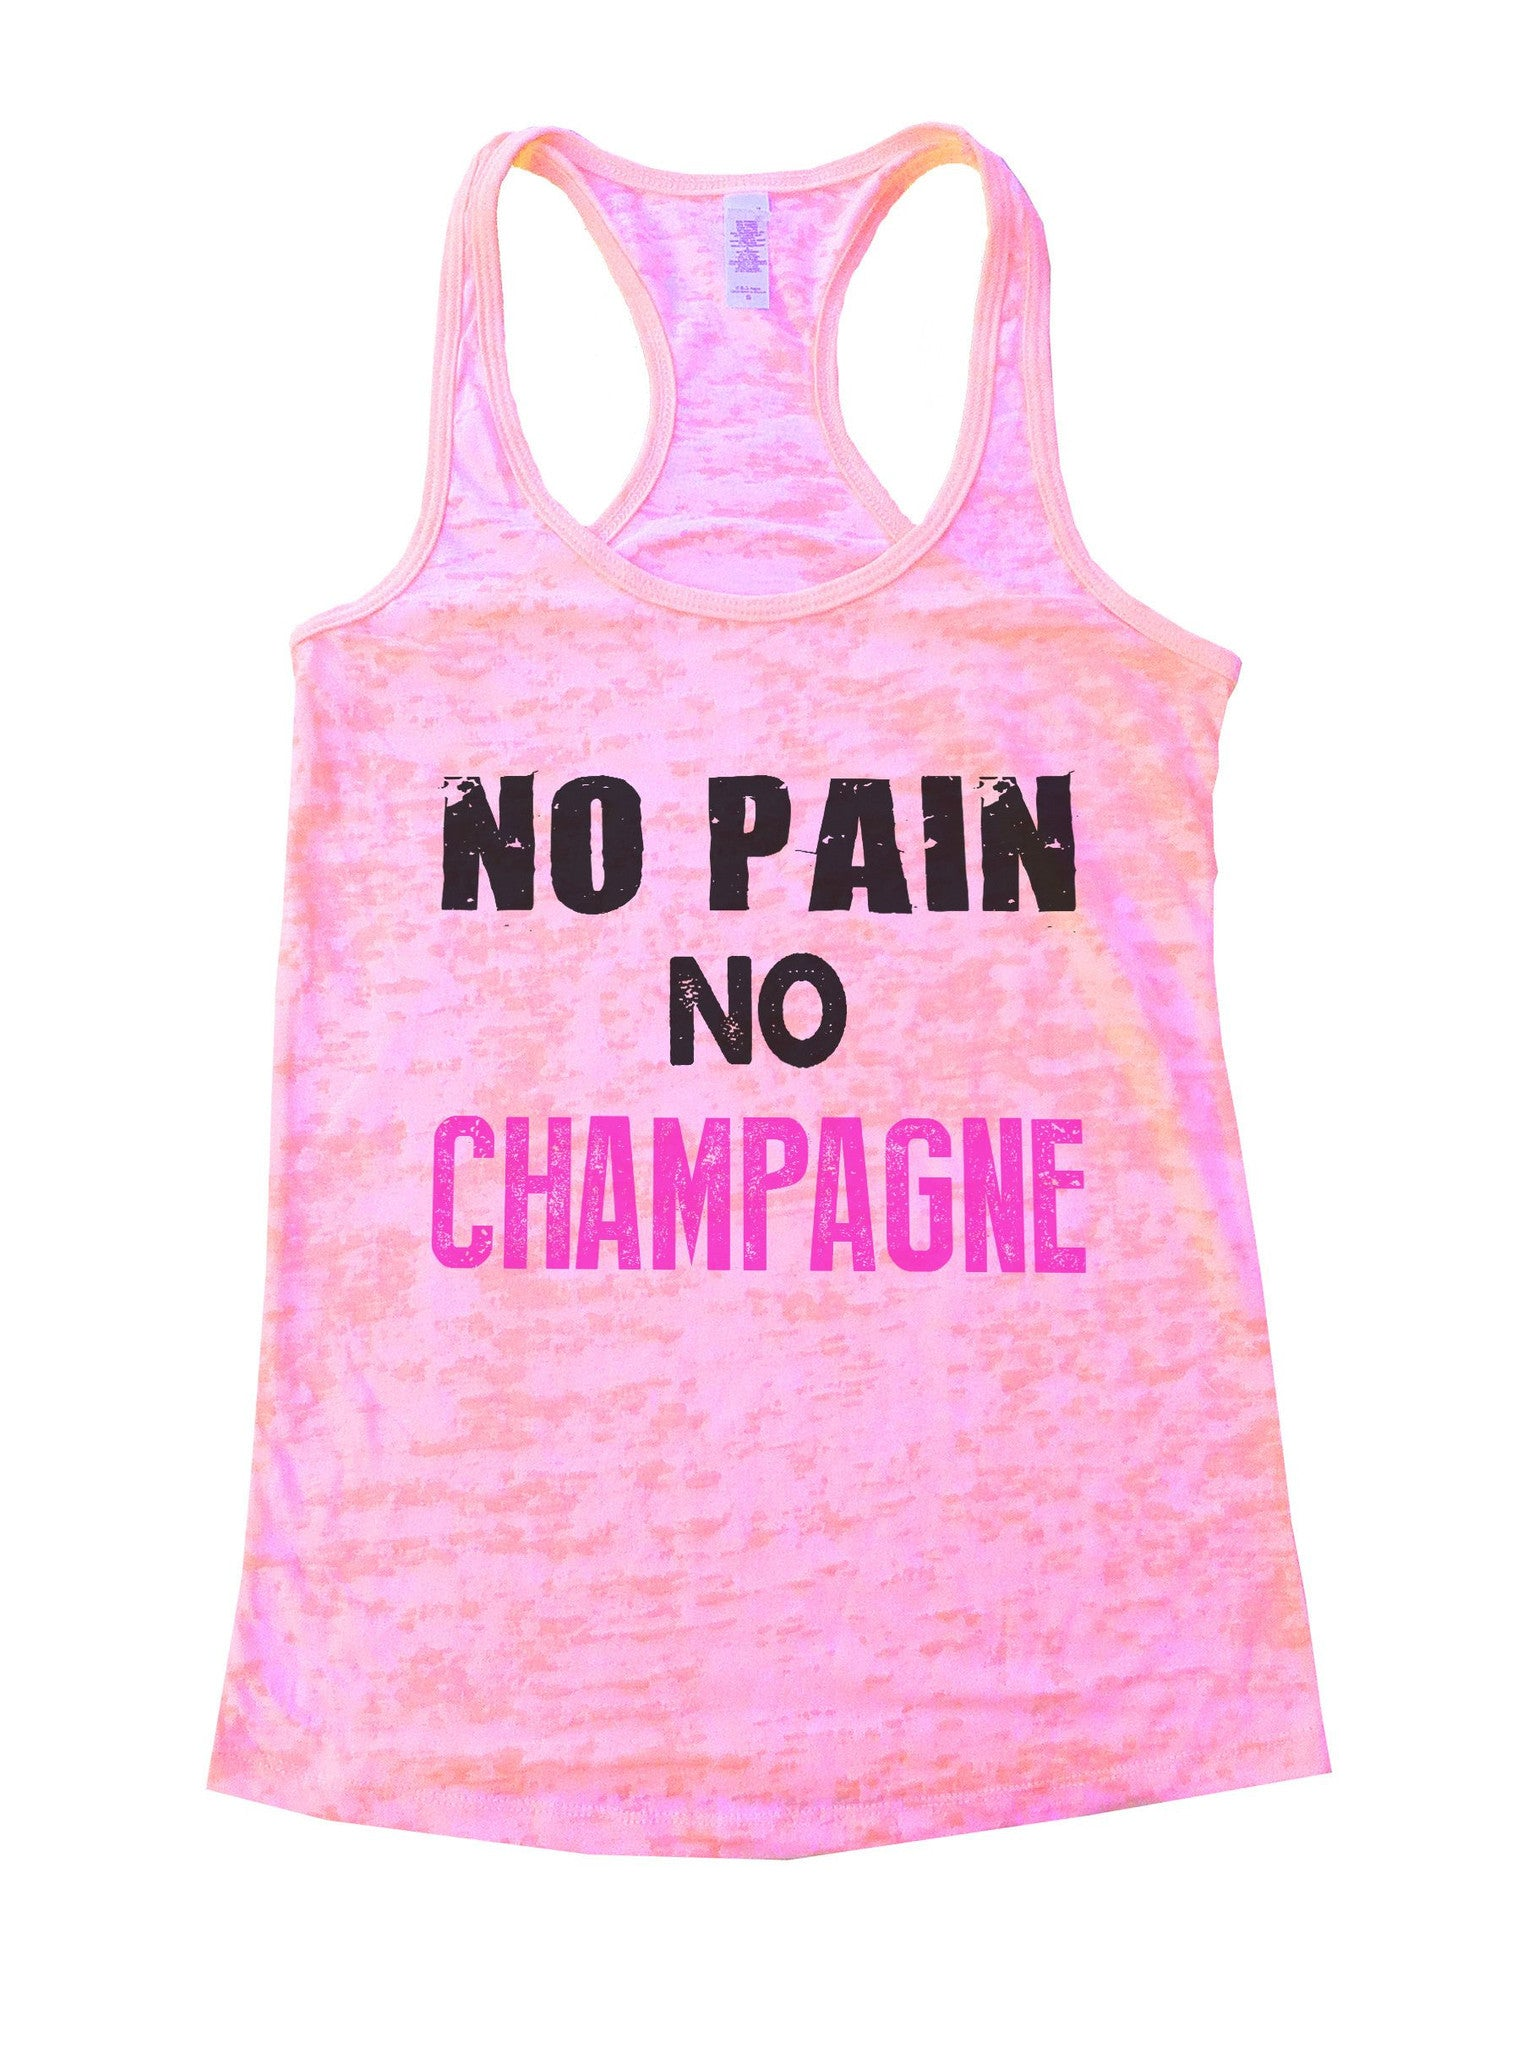 No Pain No Champagne Burnout Tank Top By BurnoutTankTops.com - 683 - Funny Shirts Tank Tops Burnouts and Triblends  - 2